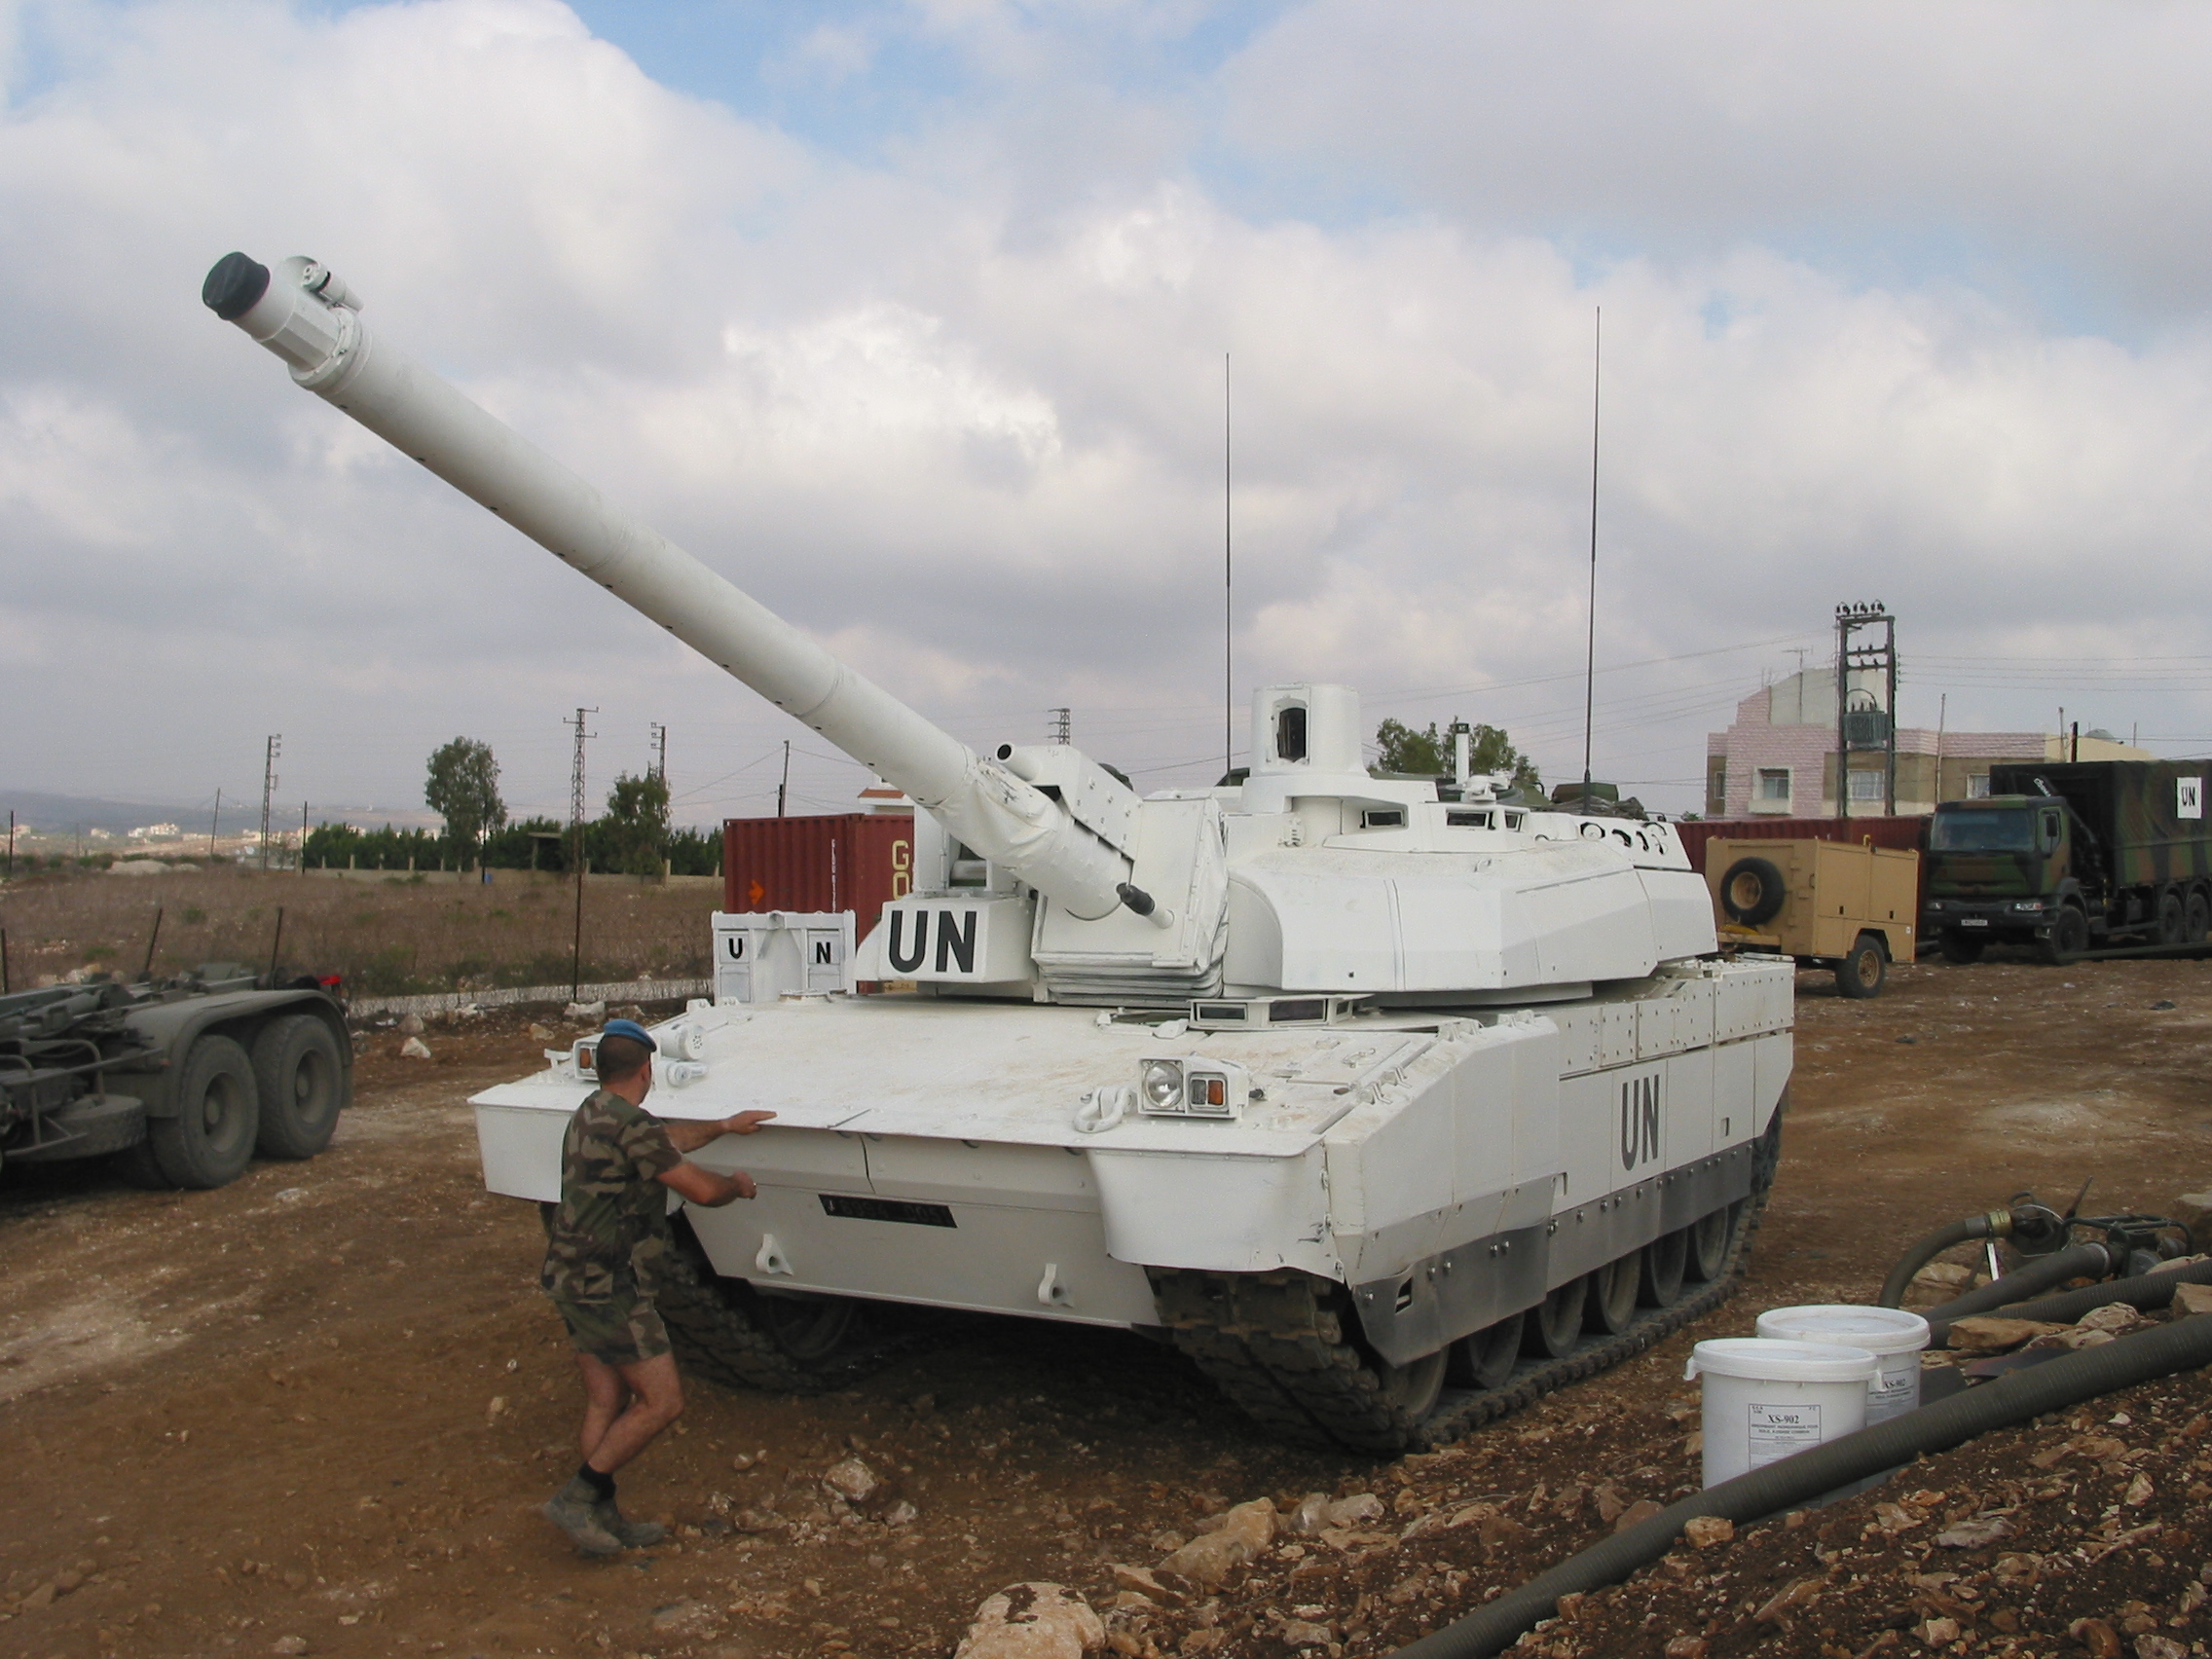 armour in Lebanon (UNIFIL) IMG_3072